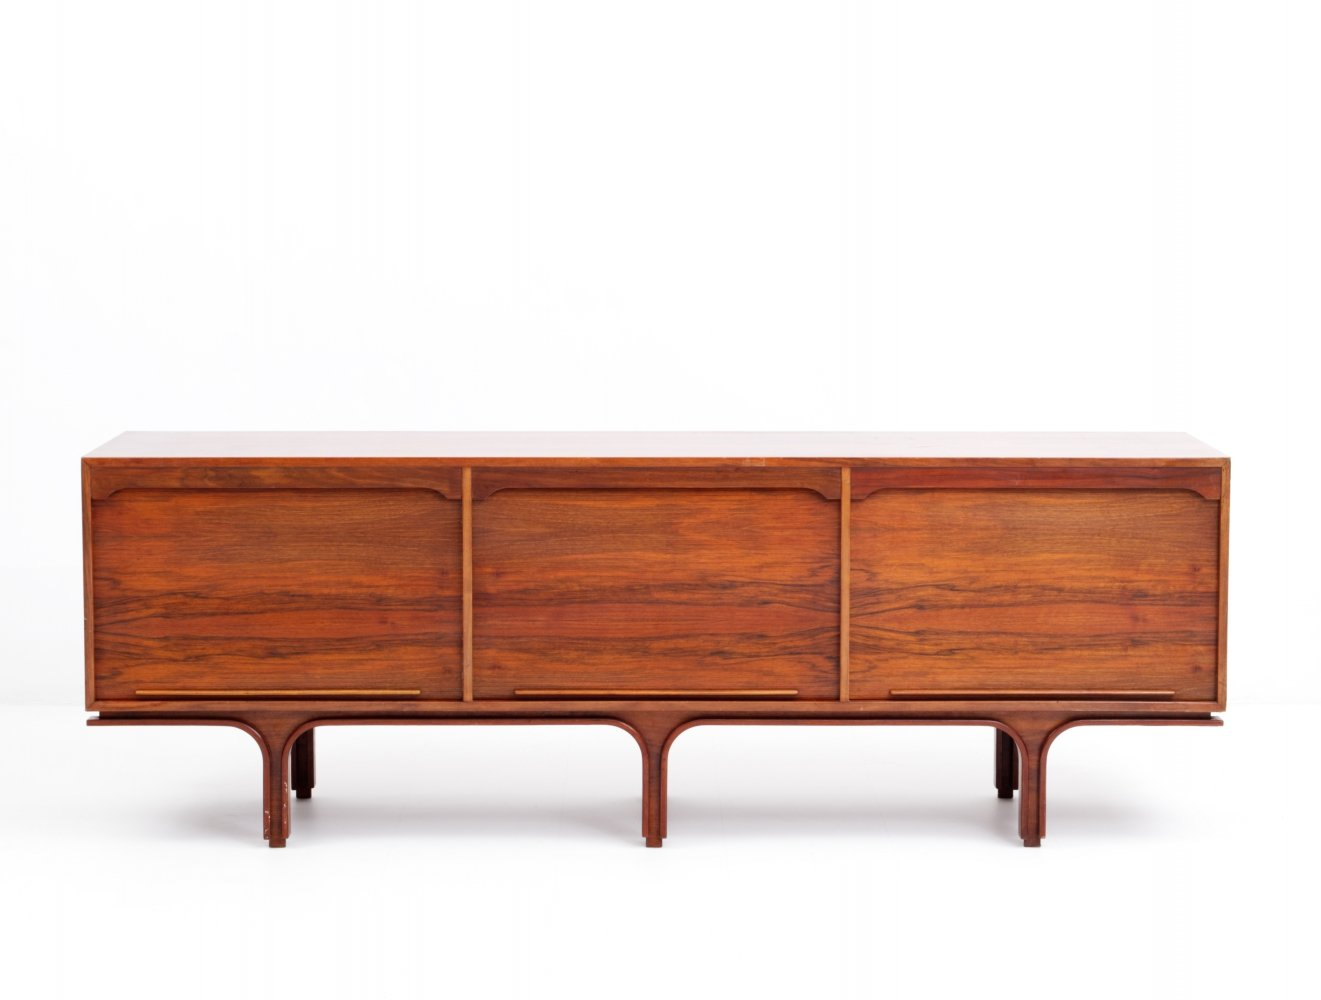 Gianfranco Frattini sideboard, 1960s